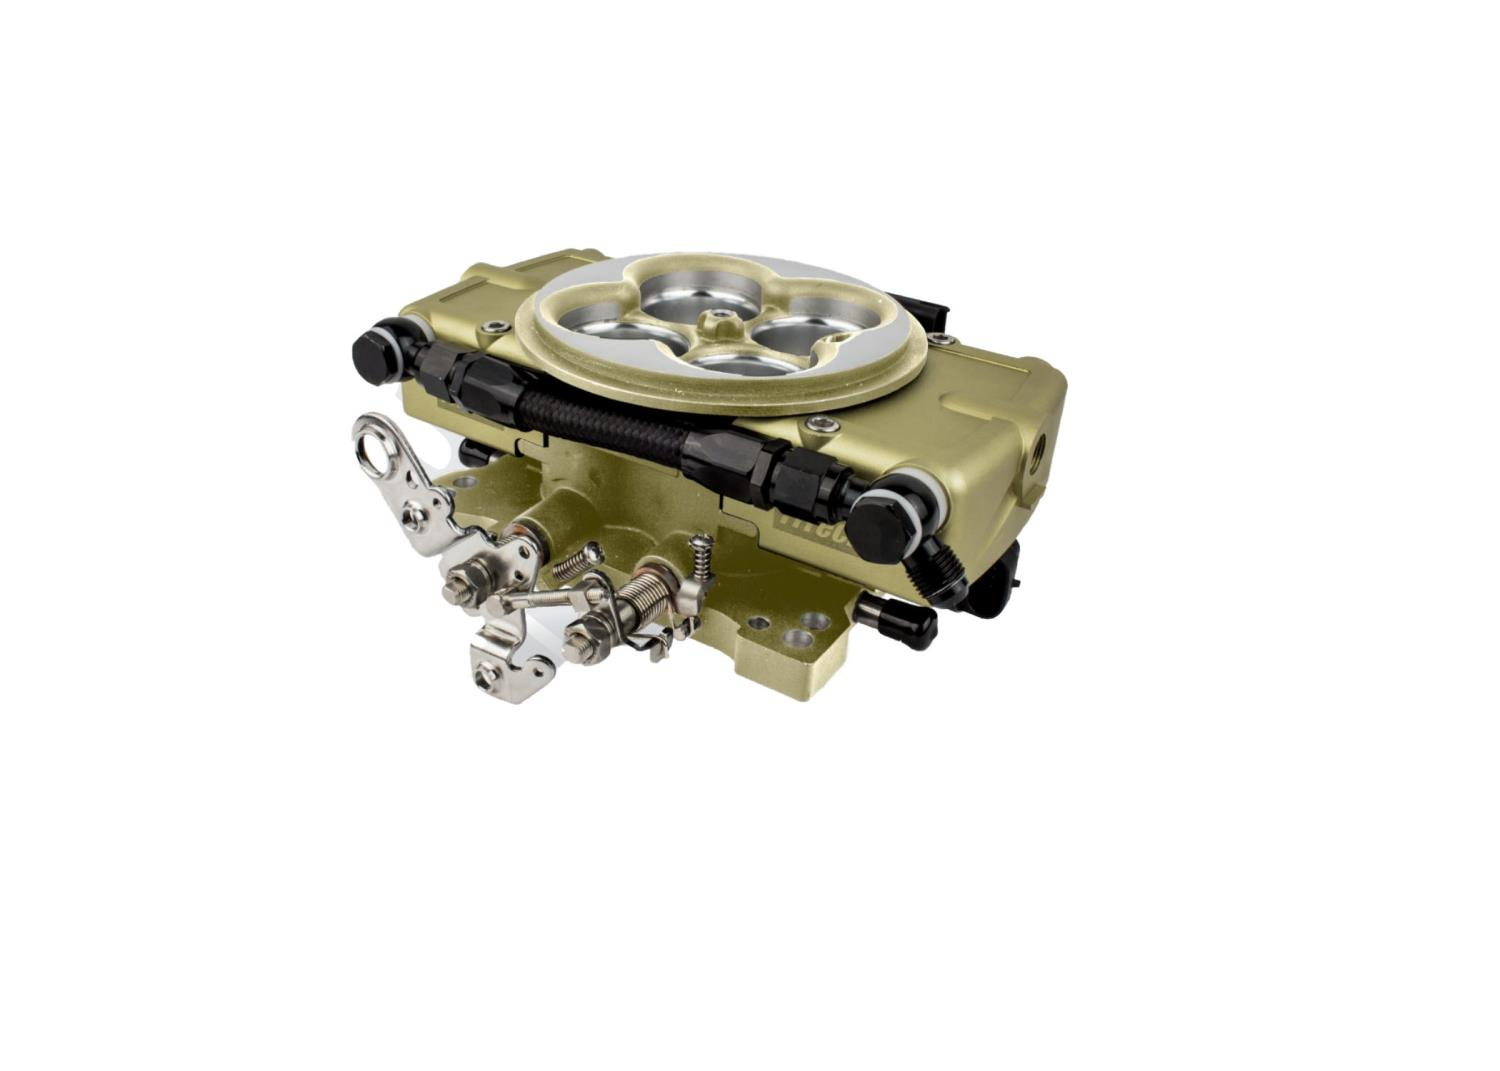 FITech Fuel Injection Go EFI Classic 600 HP Throttle Body System Basic Kit